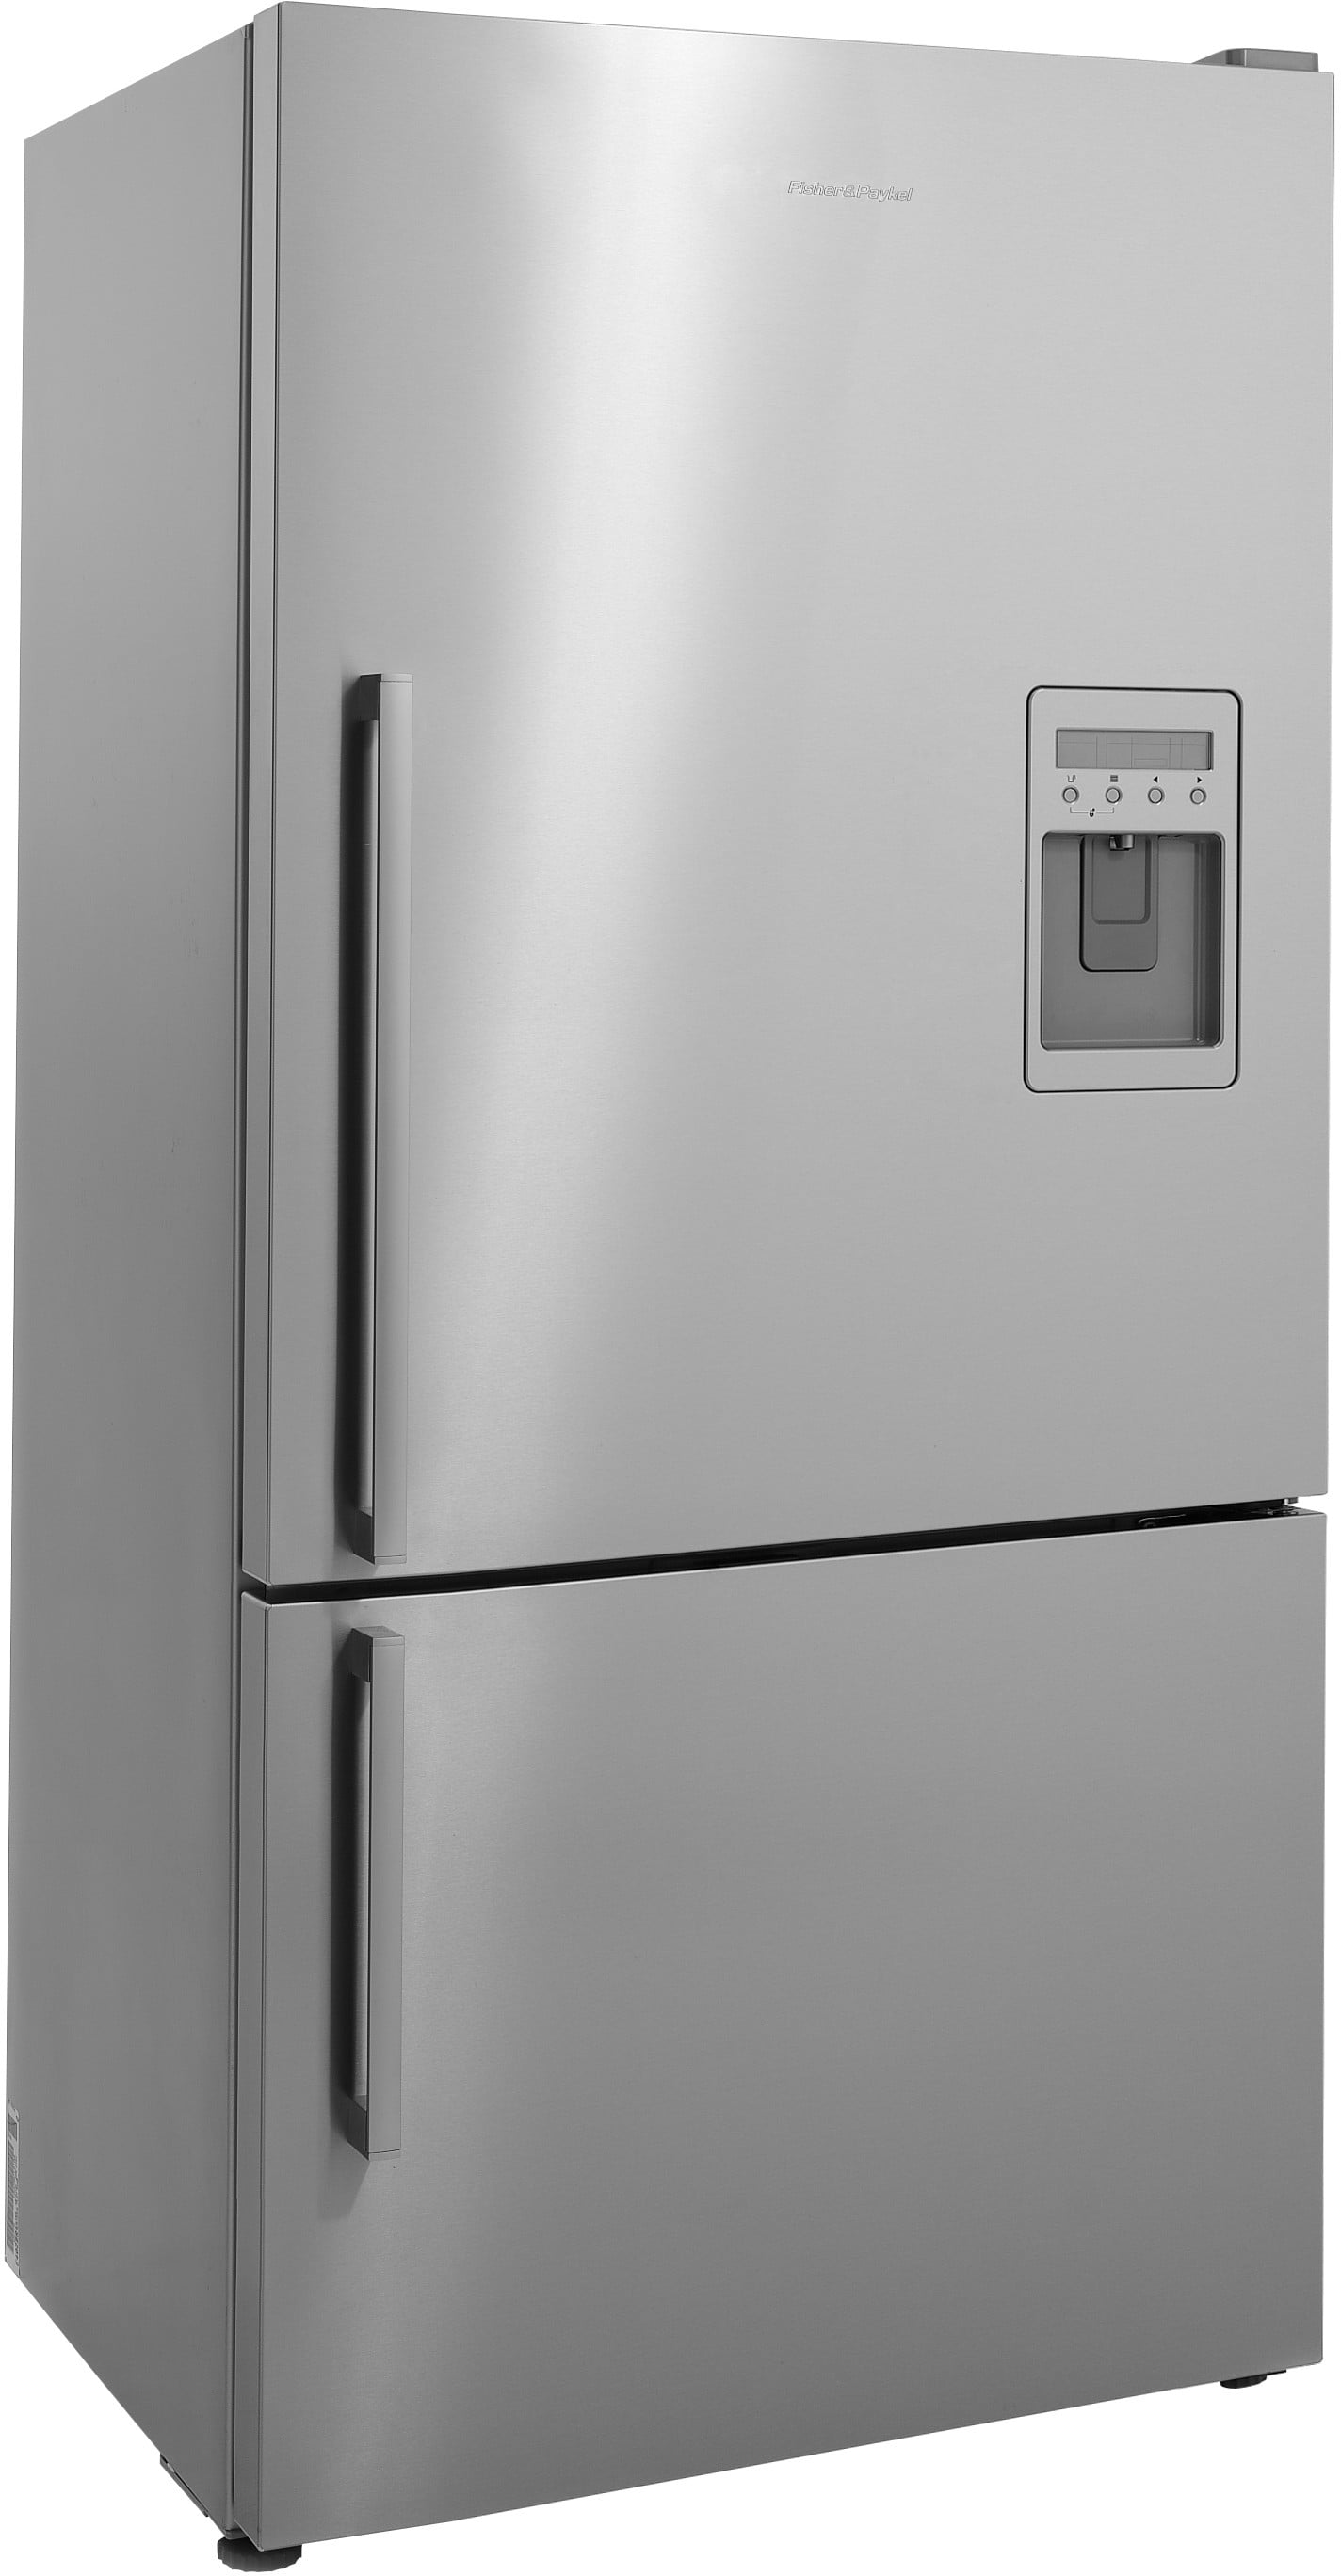 Fisher Amp Paykel E522brxfdu 17 3 Cu Ft Bottom Freezer